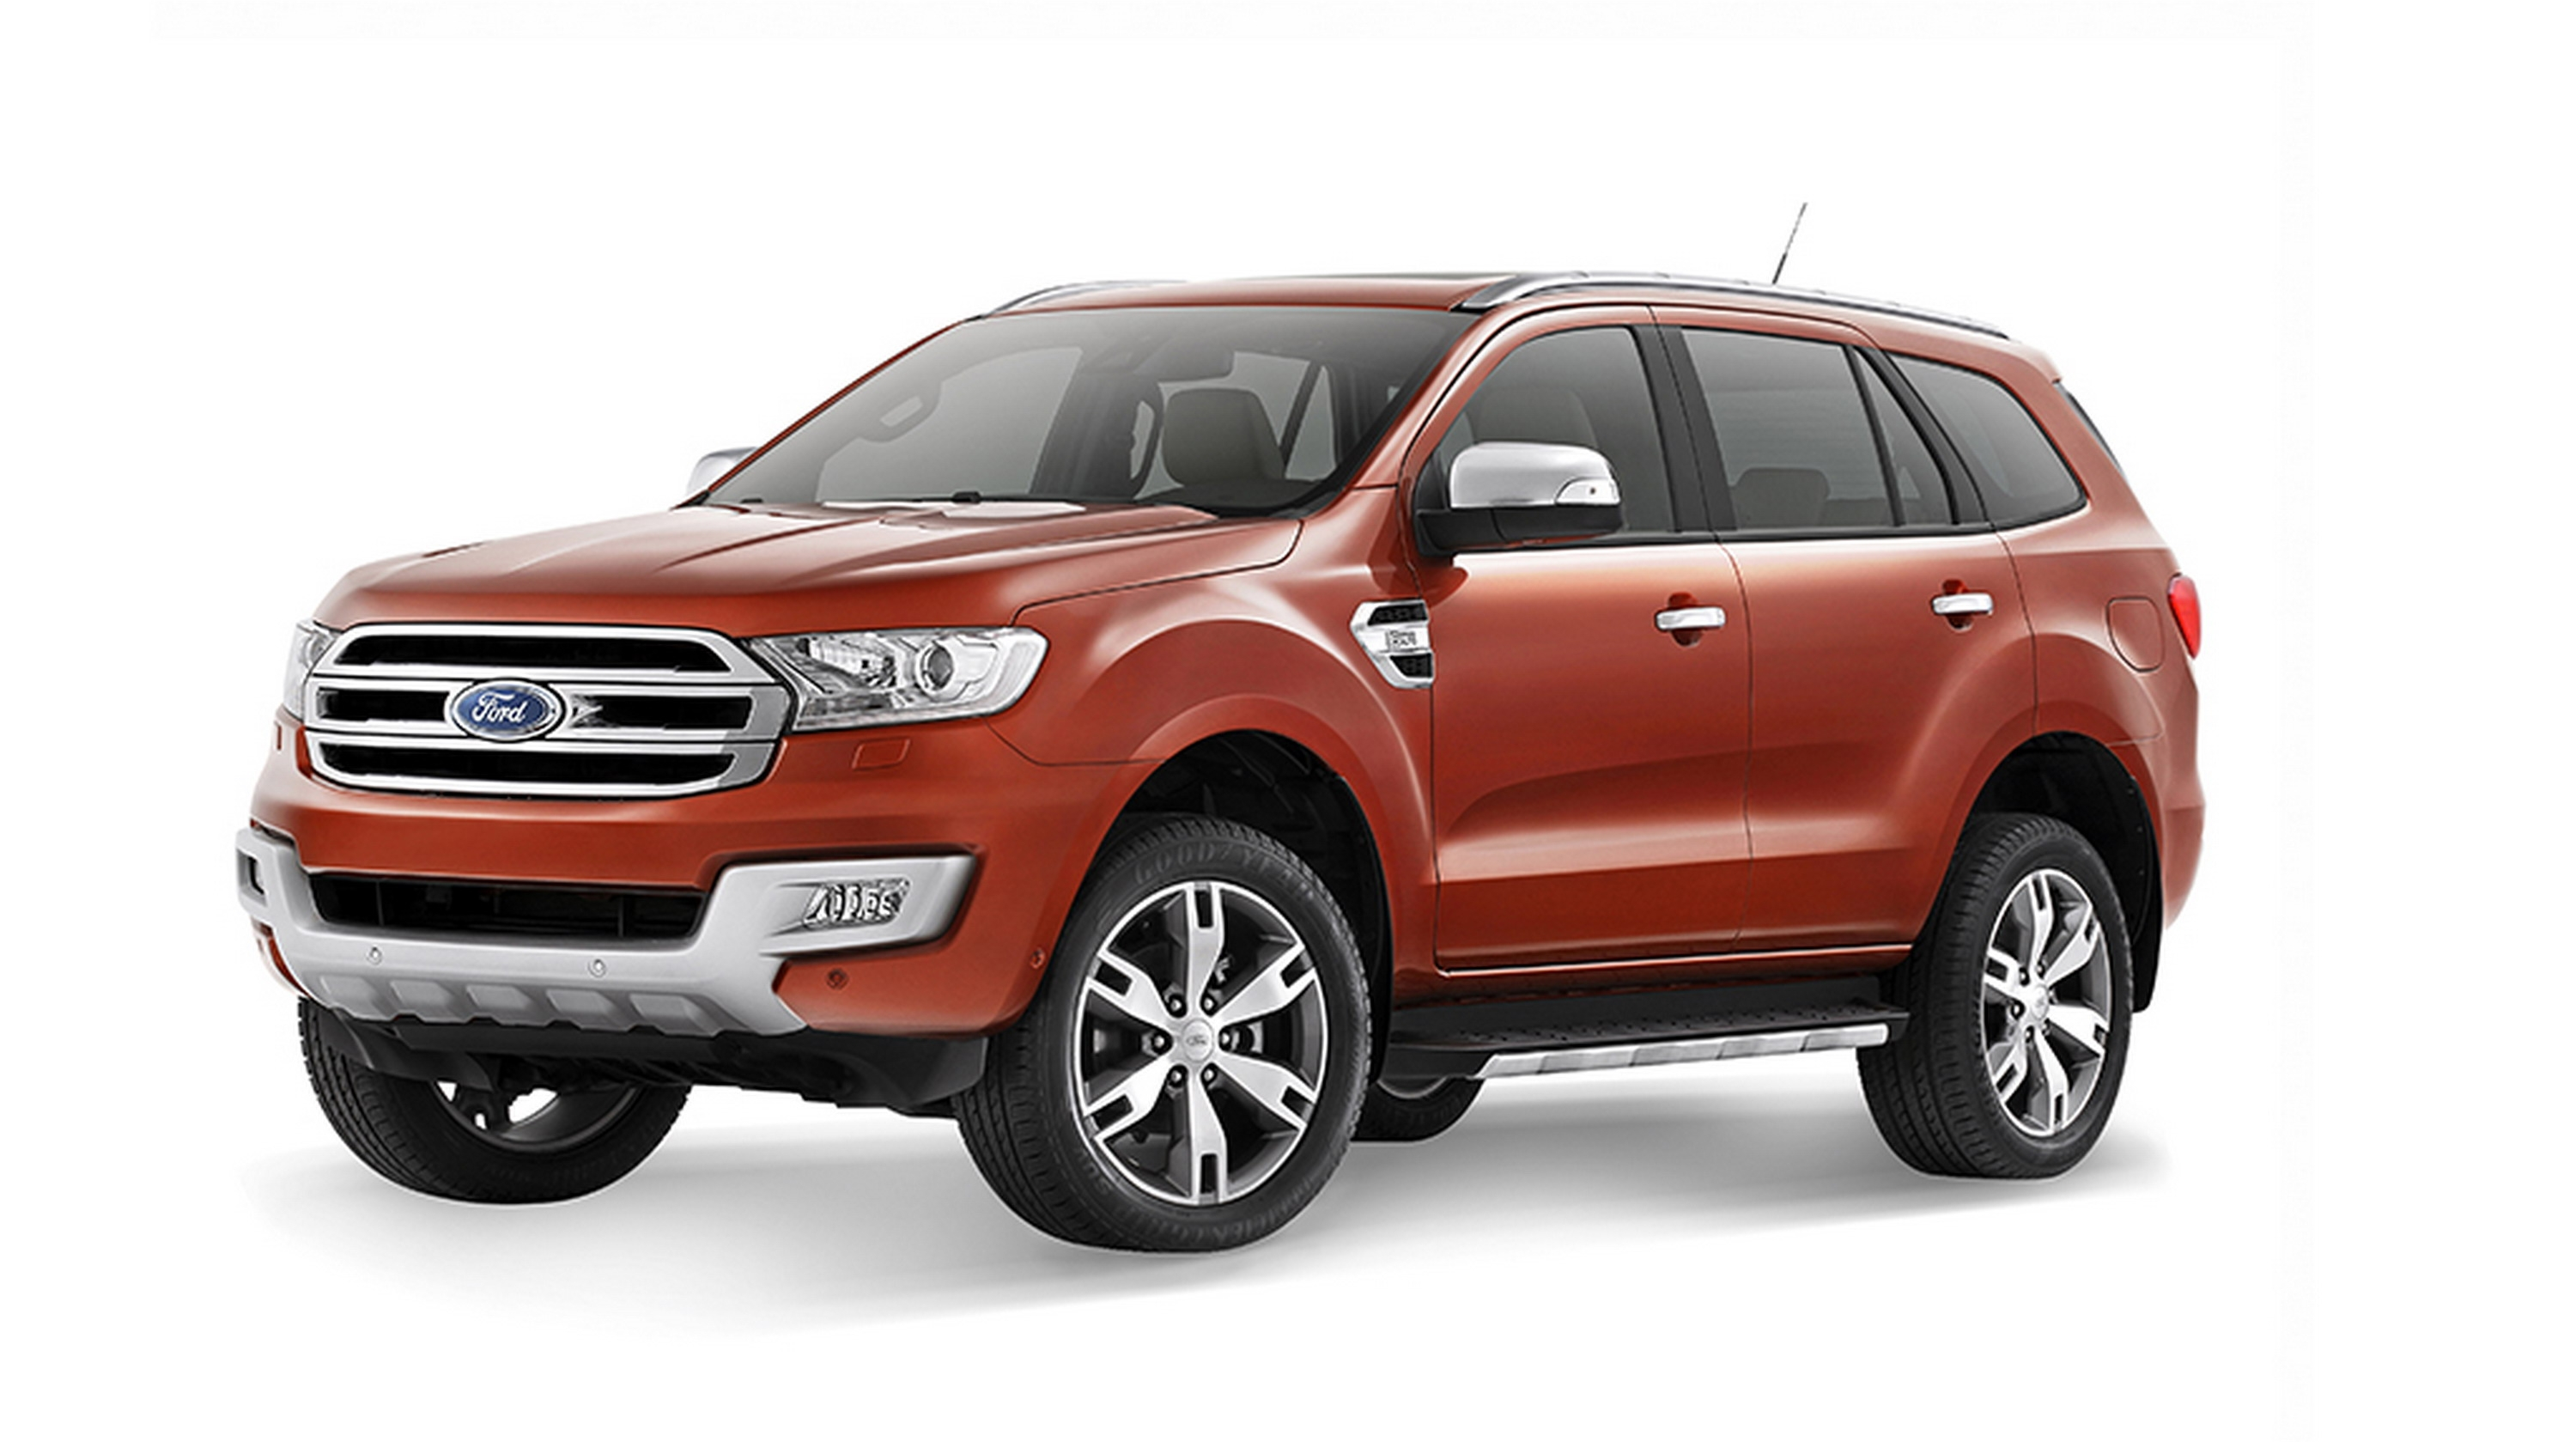 2015 ford everest reviews - Say Hello To What Is Potentially The Best True Suv Ford Has Ever Made The 2015 Everest Just Try Not To Fall In Love Sadly The American Automaker Isn T